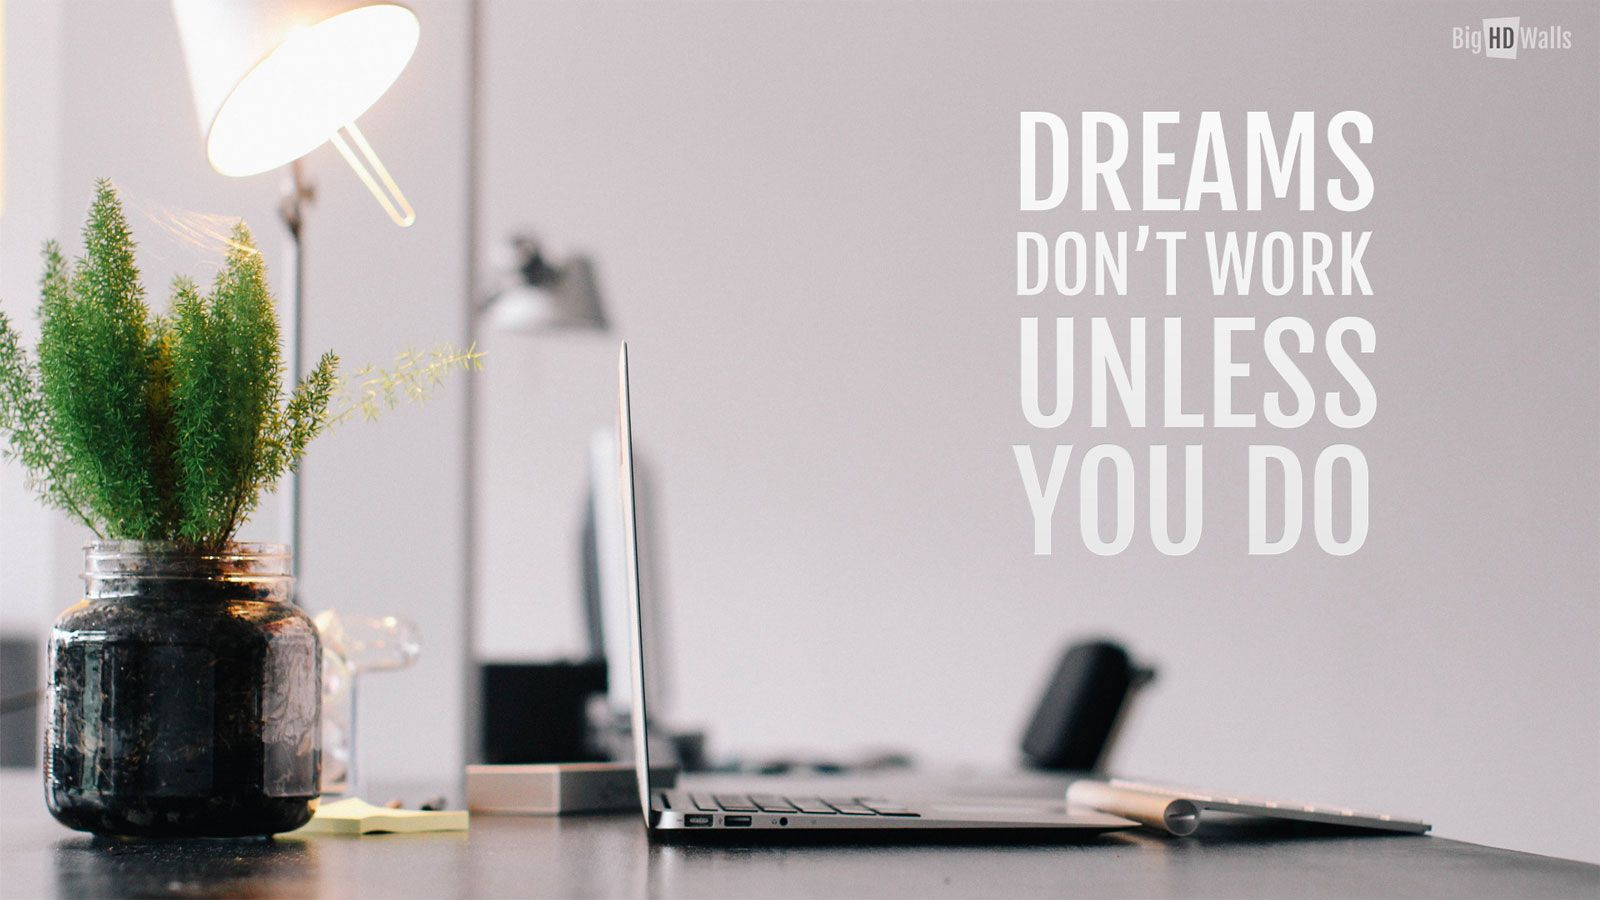 Cool 35 Amazing Hd Motivational Wallpaper For Your Desktop Desain Motivasi Gambar